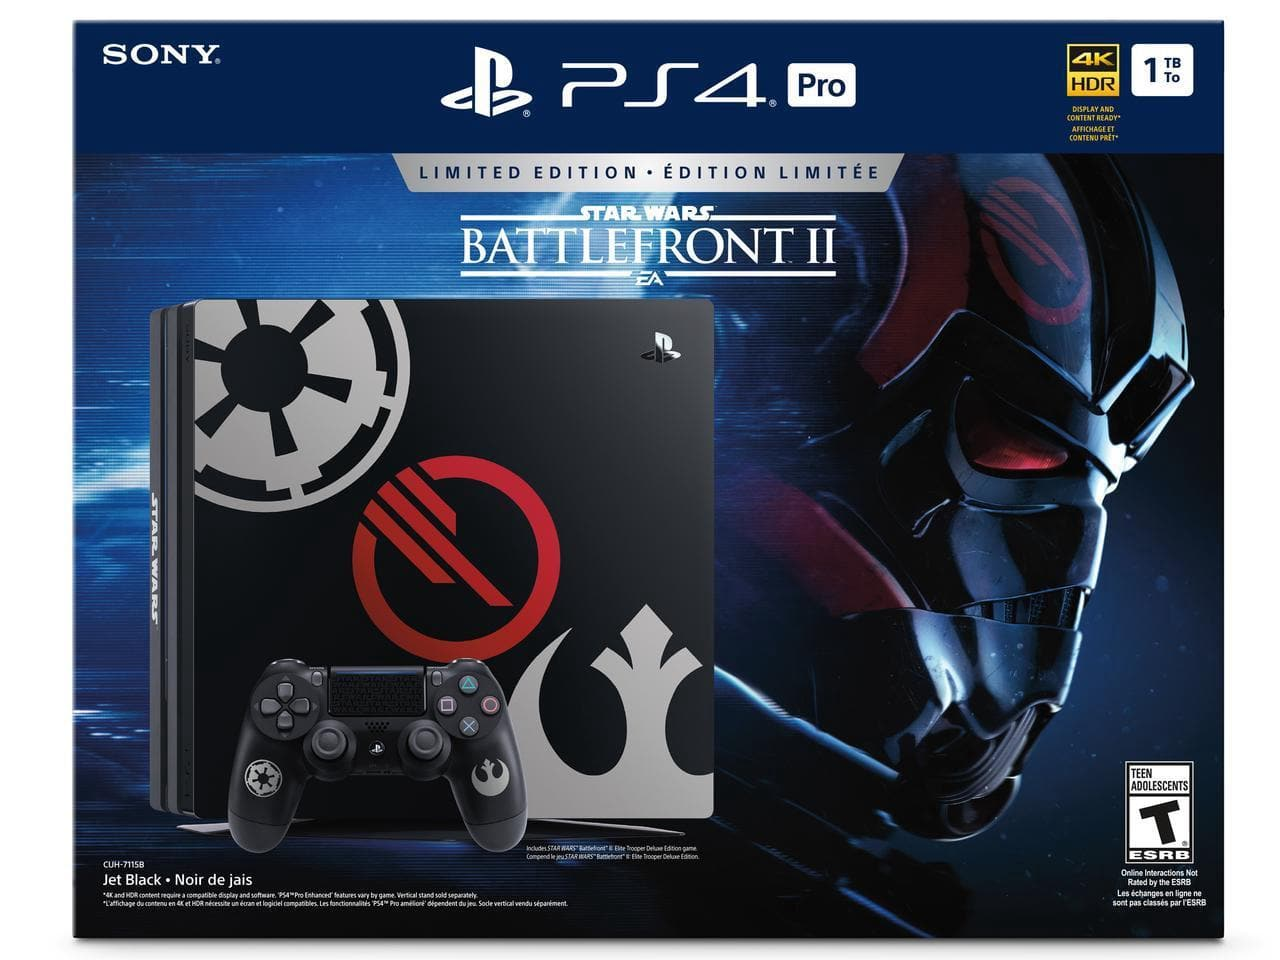 PlayStation 4 Pro 1TB Limited Edition - Star Wars Battlefront II Bun $699.98